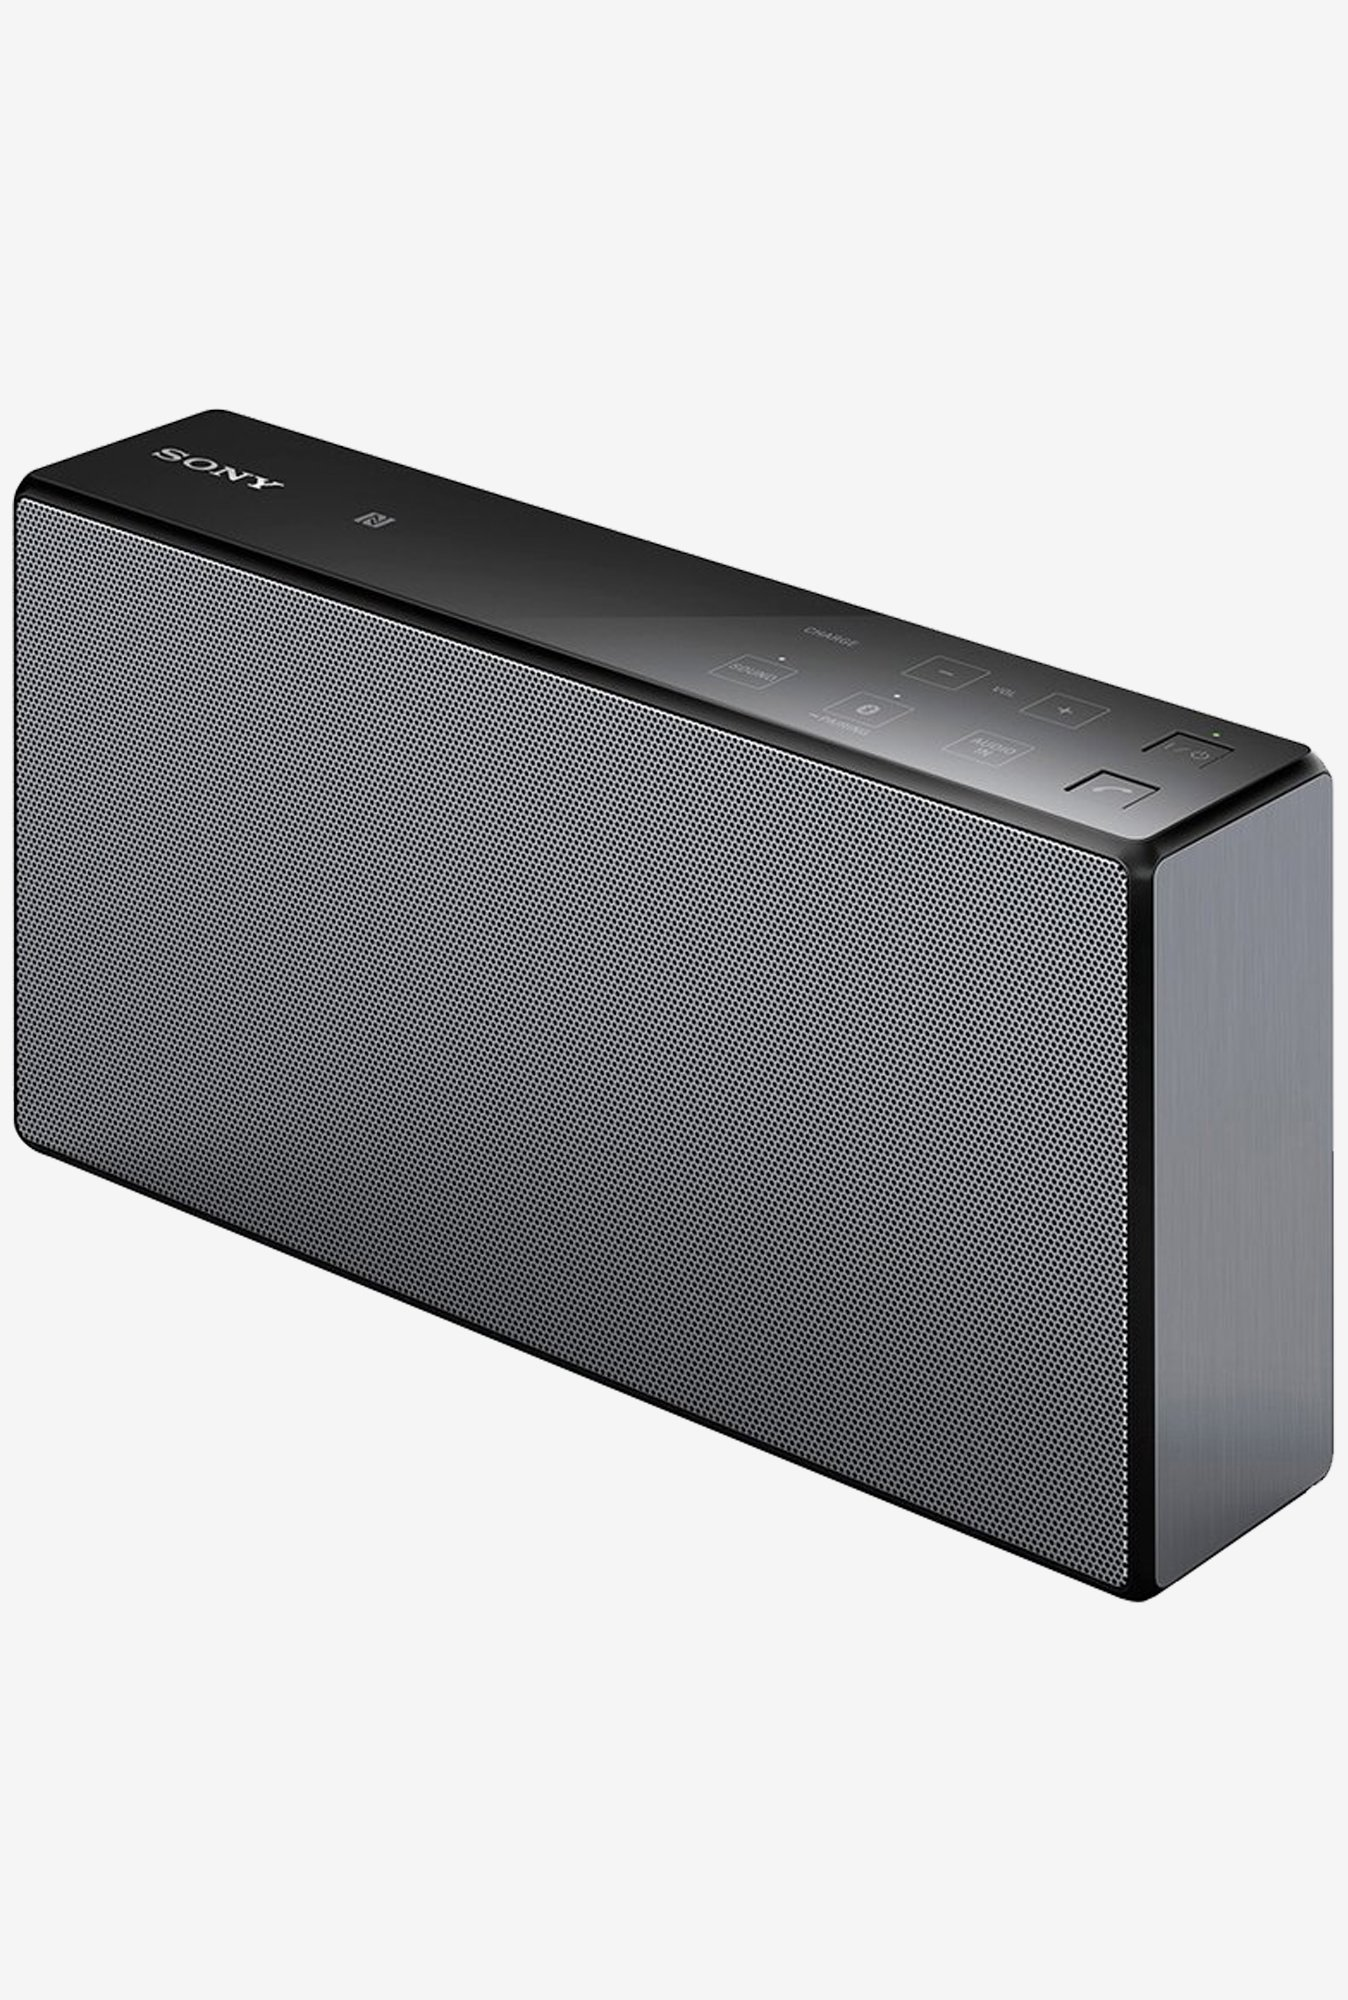 Sony SRS-X55 Premium Wireless Speaker with Bluetooth (Black)